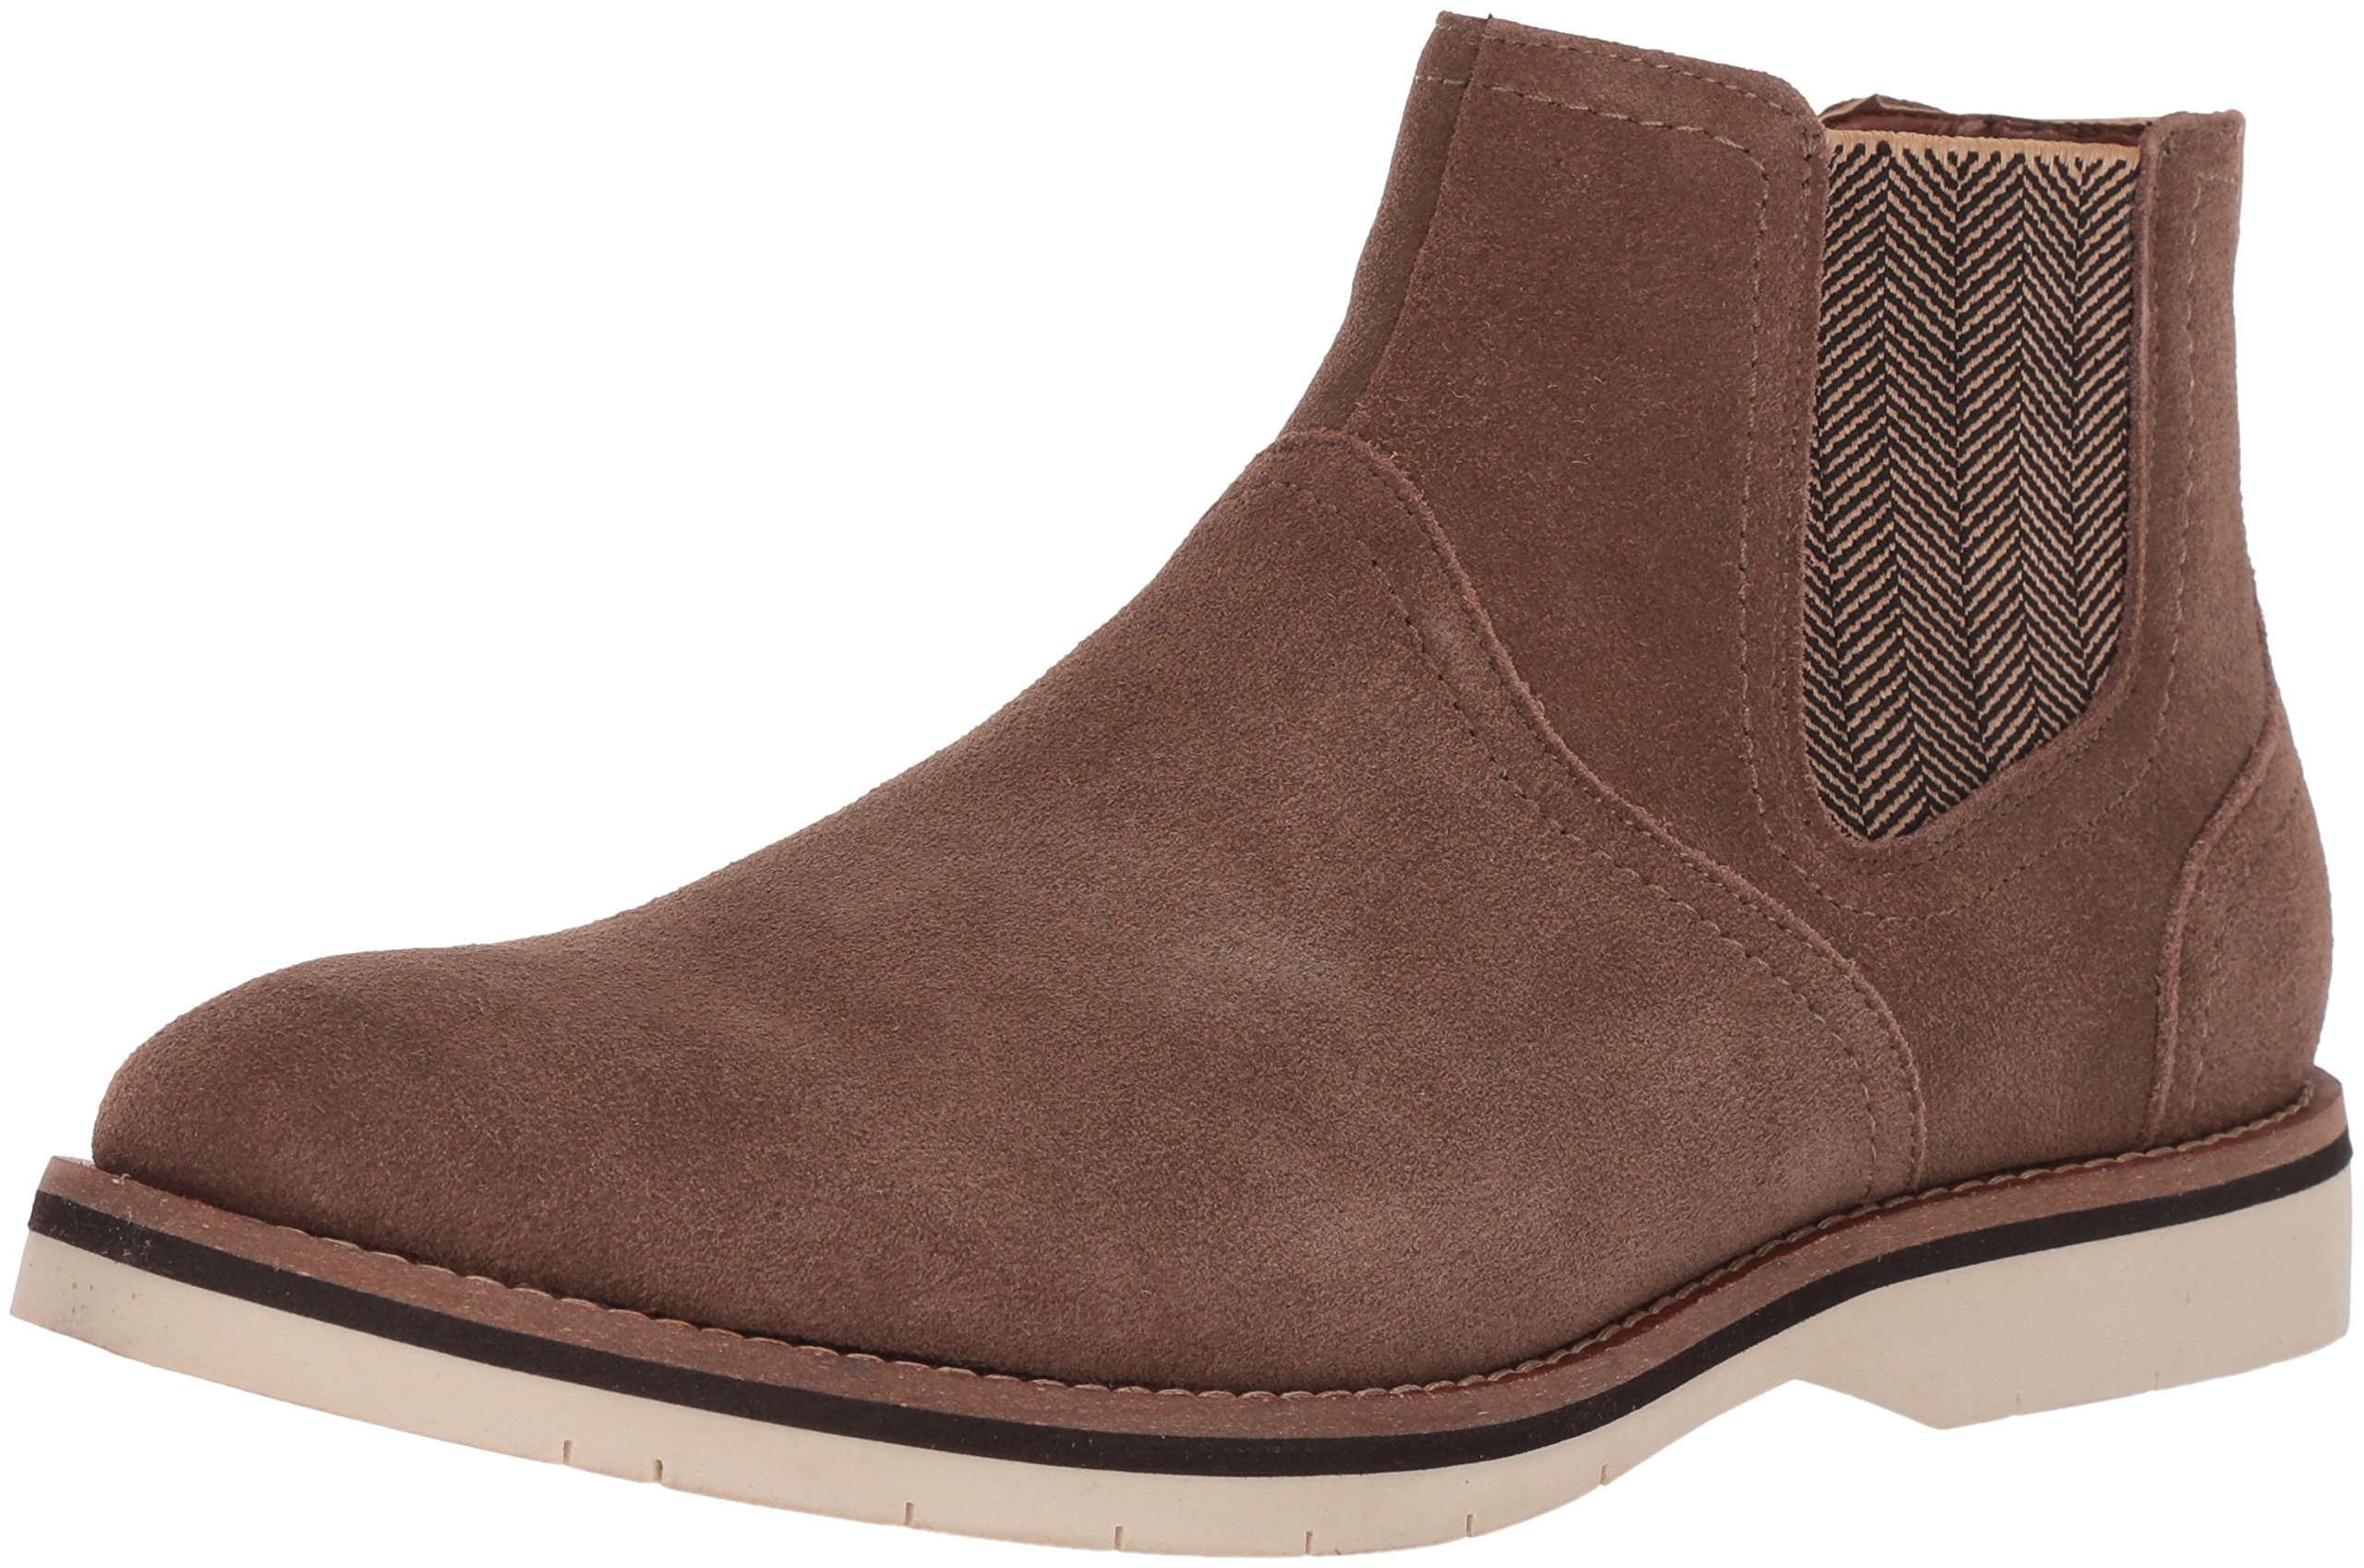 Steve Madden Men's Saine Chelsea Boot, Taupe Suede, 9.5 M US by Steve Madden